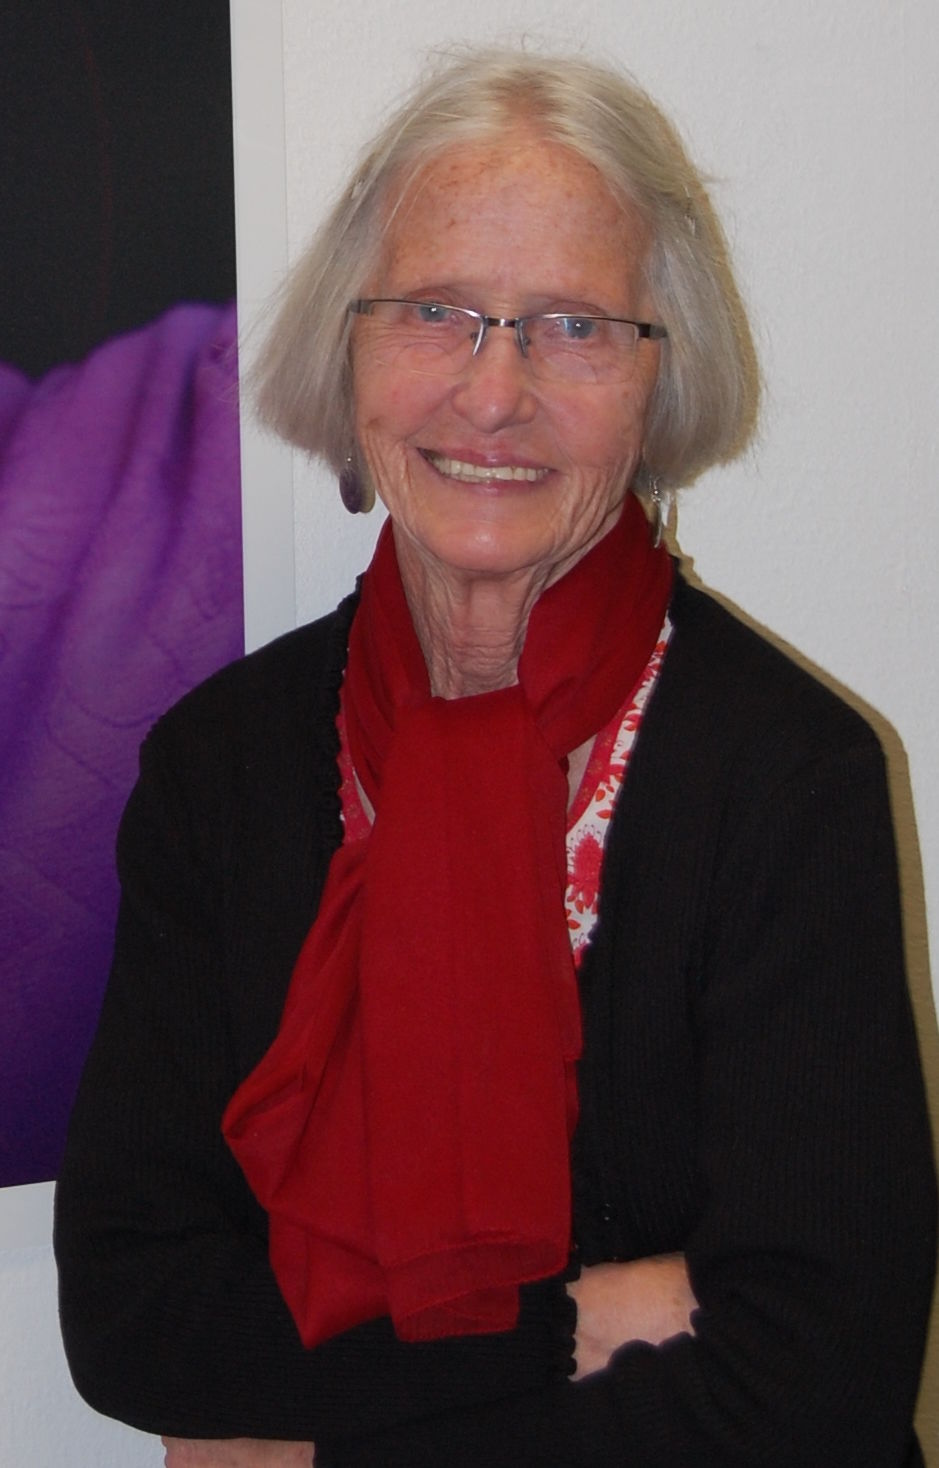 Christa, a former OM worker from Germany, shares about her days serving with OM in the '60s.